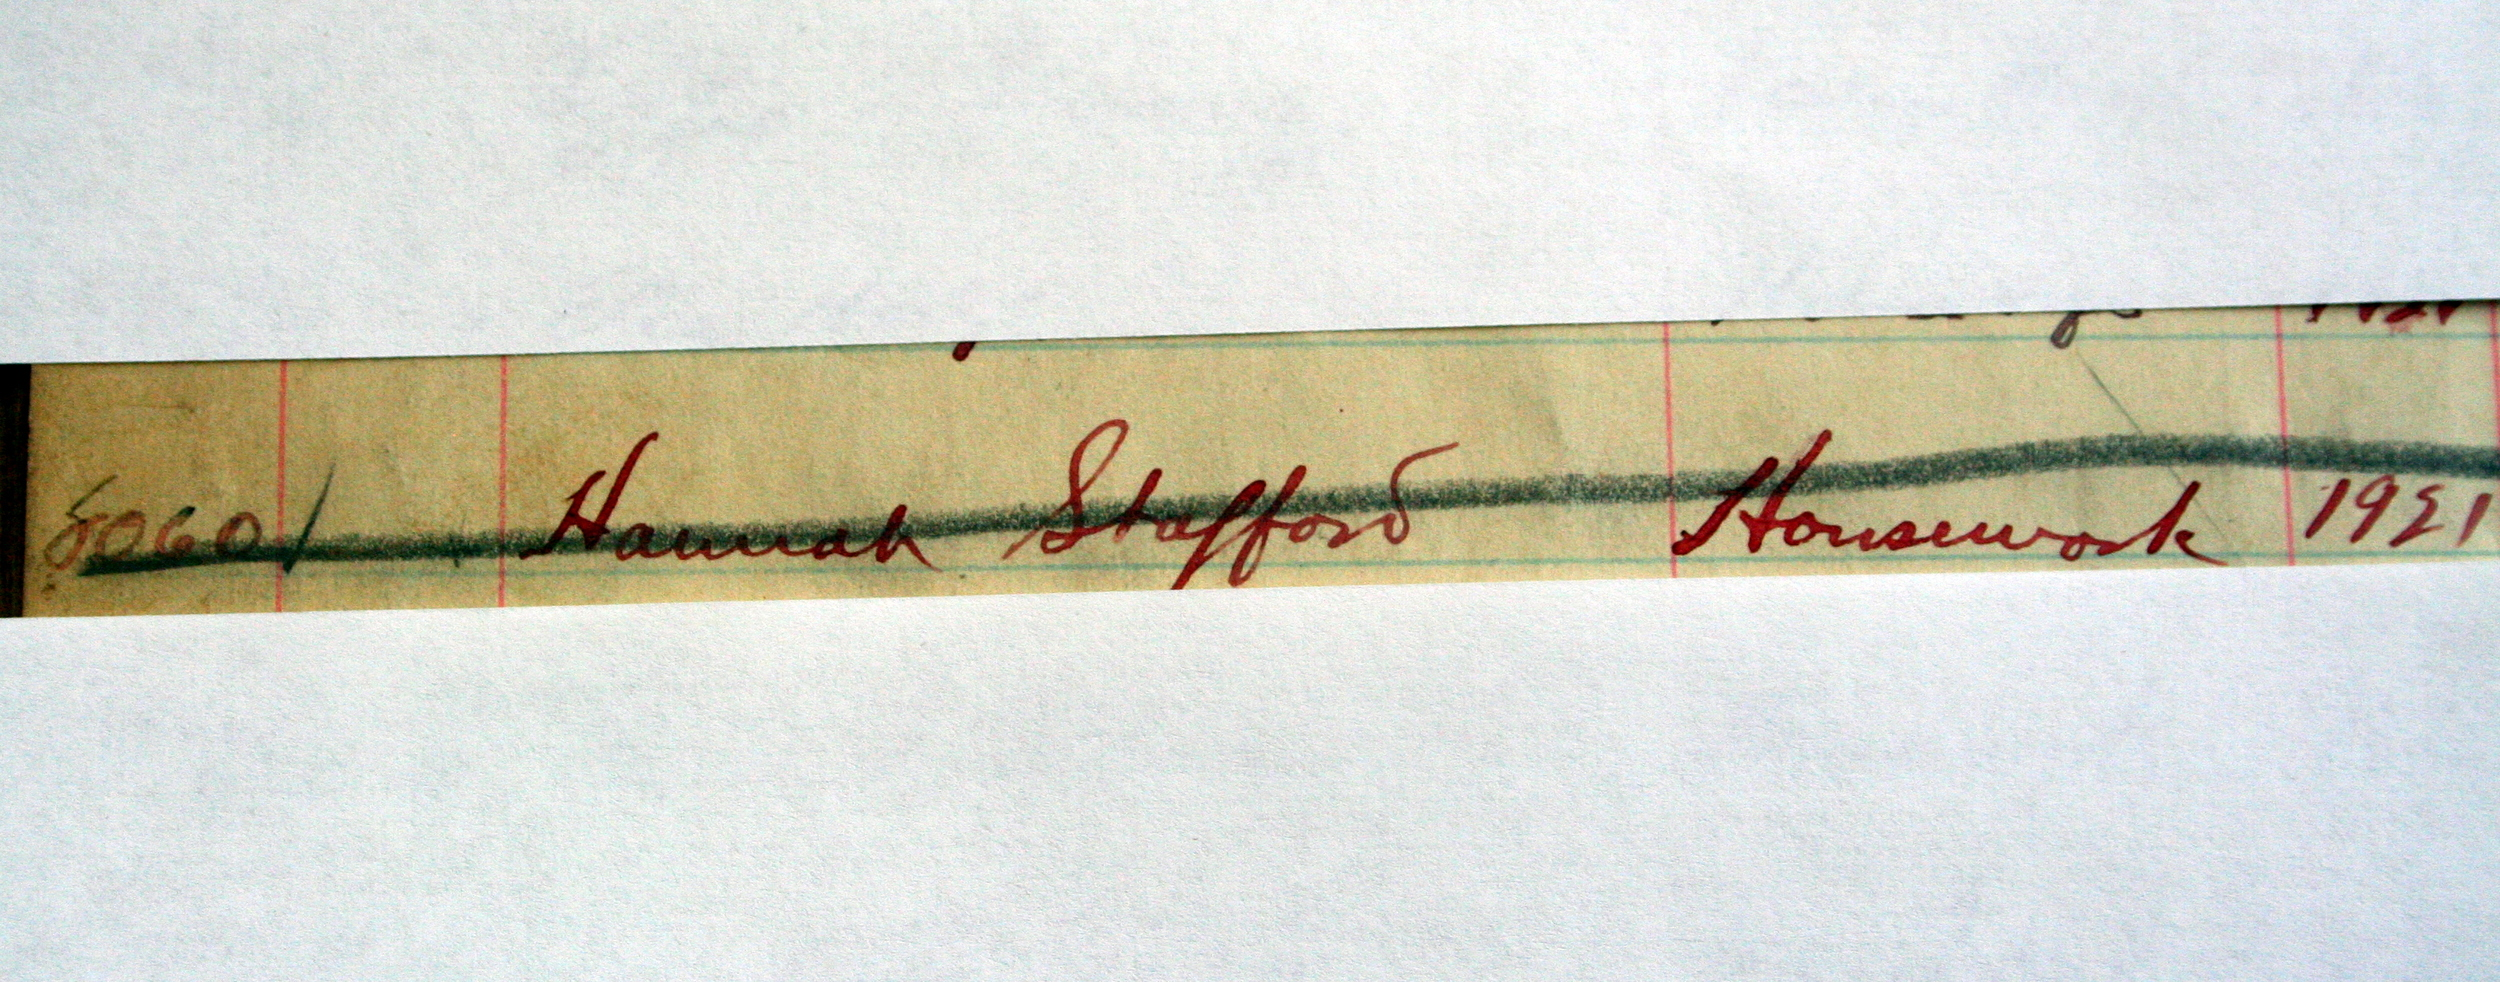 Record at Broughton signifying Hannah died while a patient there.